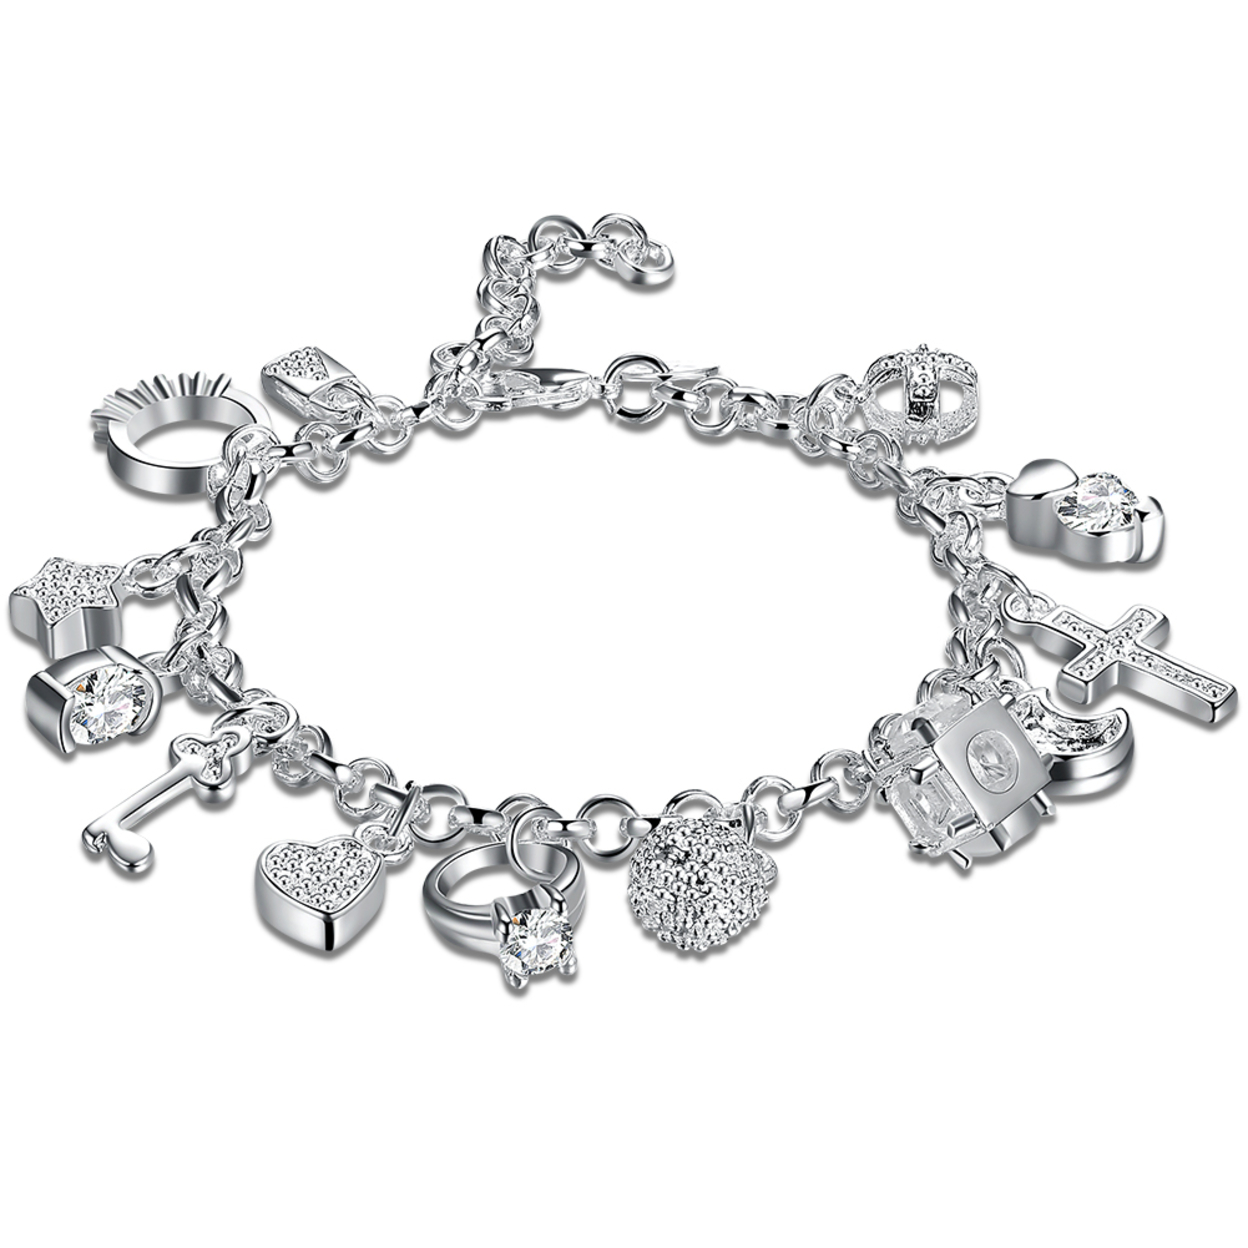 Sterling Silver Plated Classy Multi Charm Bracelet